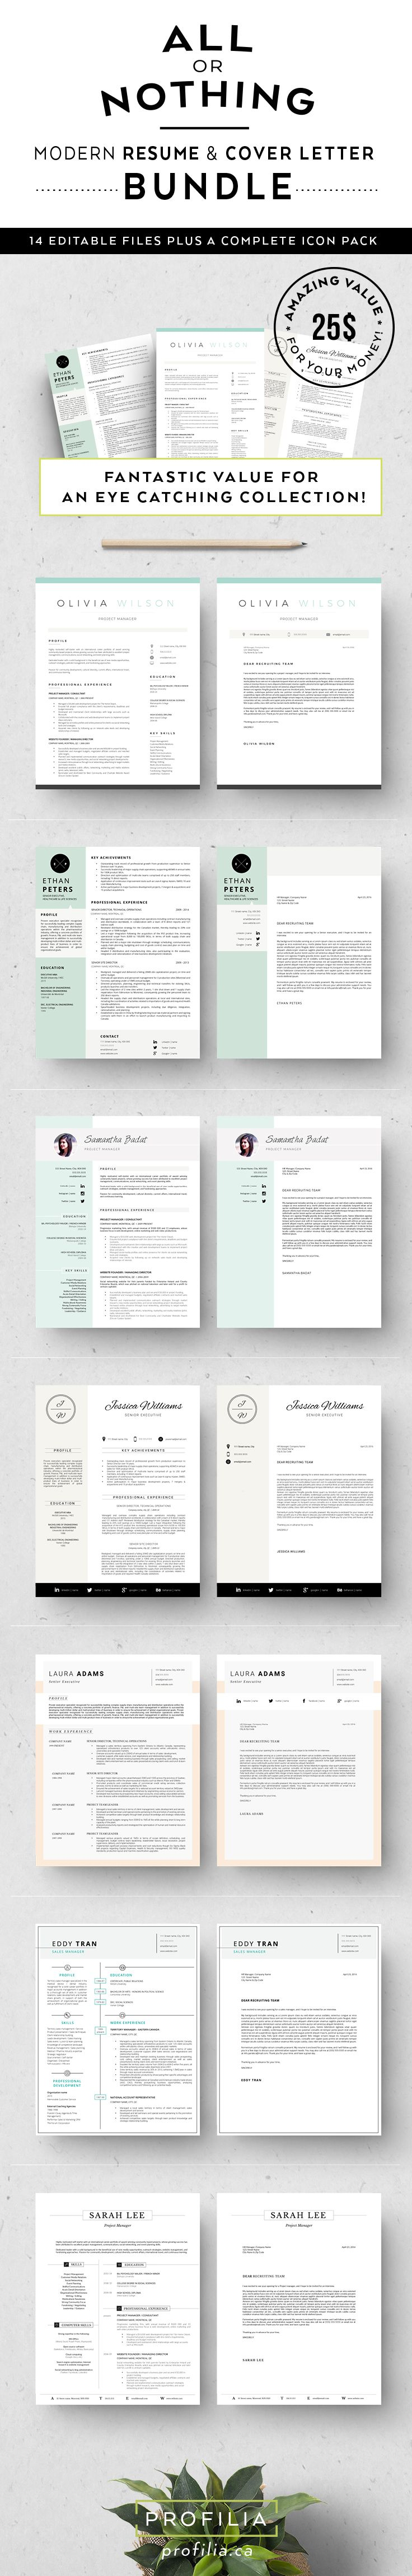 resume  u0026 cover letter template bundle from  profilia ca  resume  cv  resumetemplate